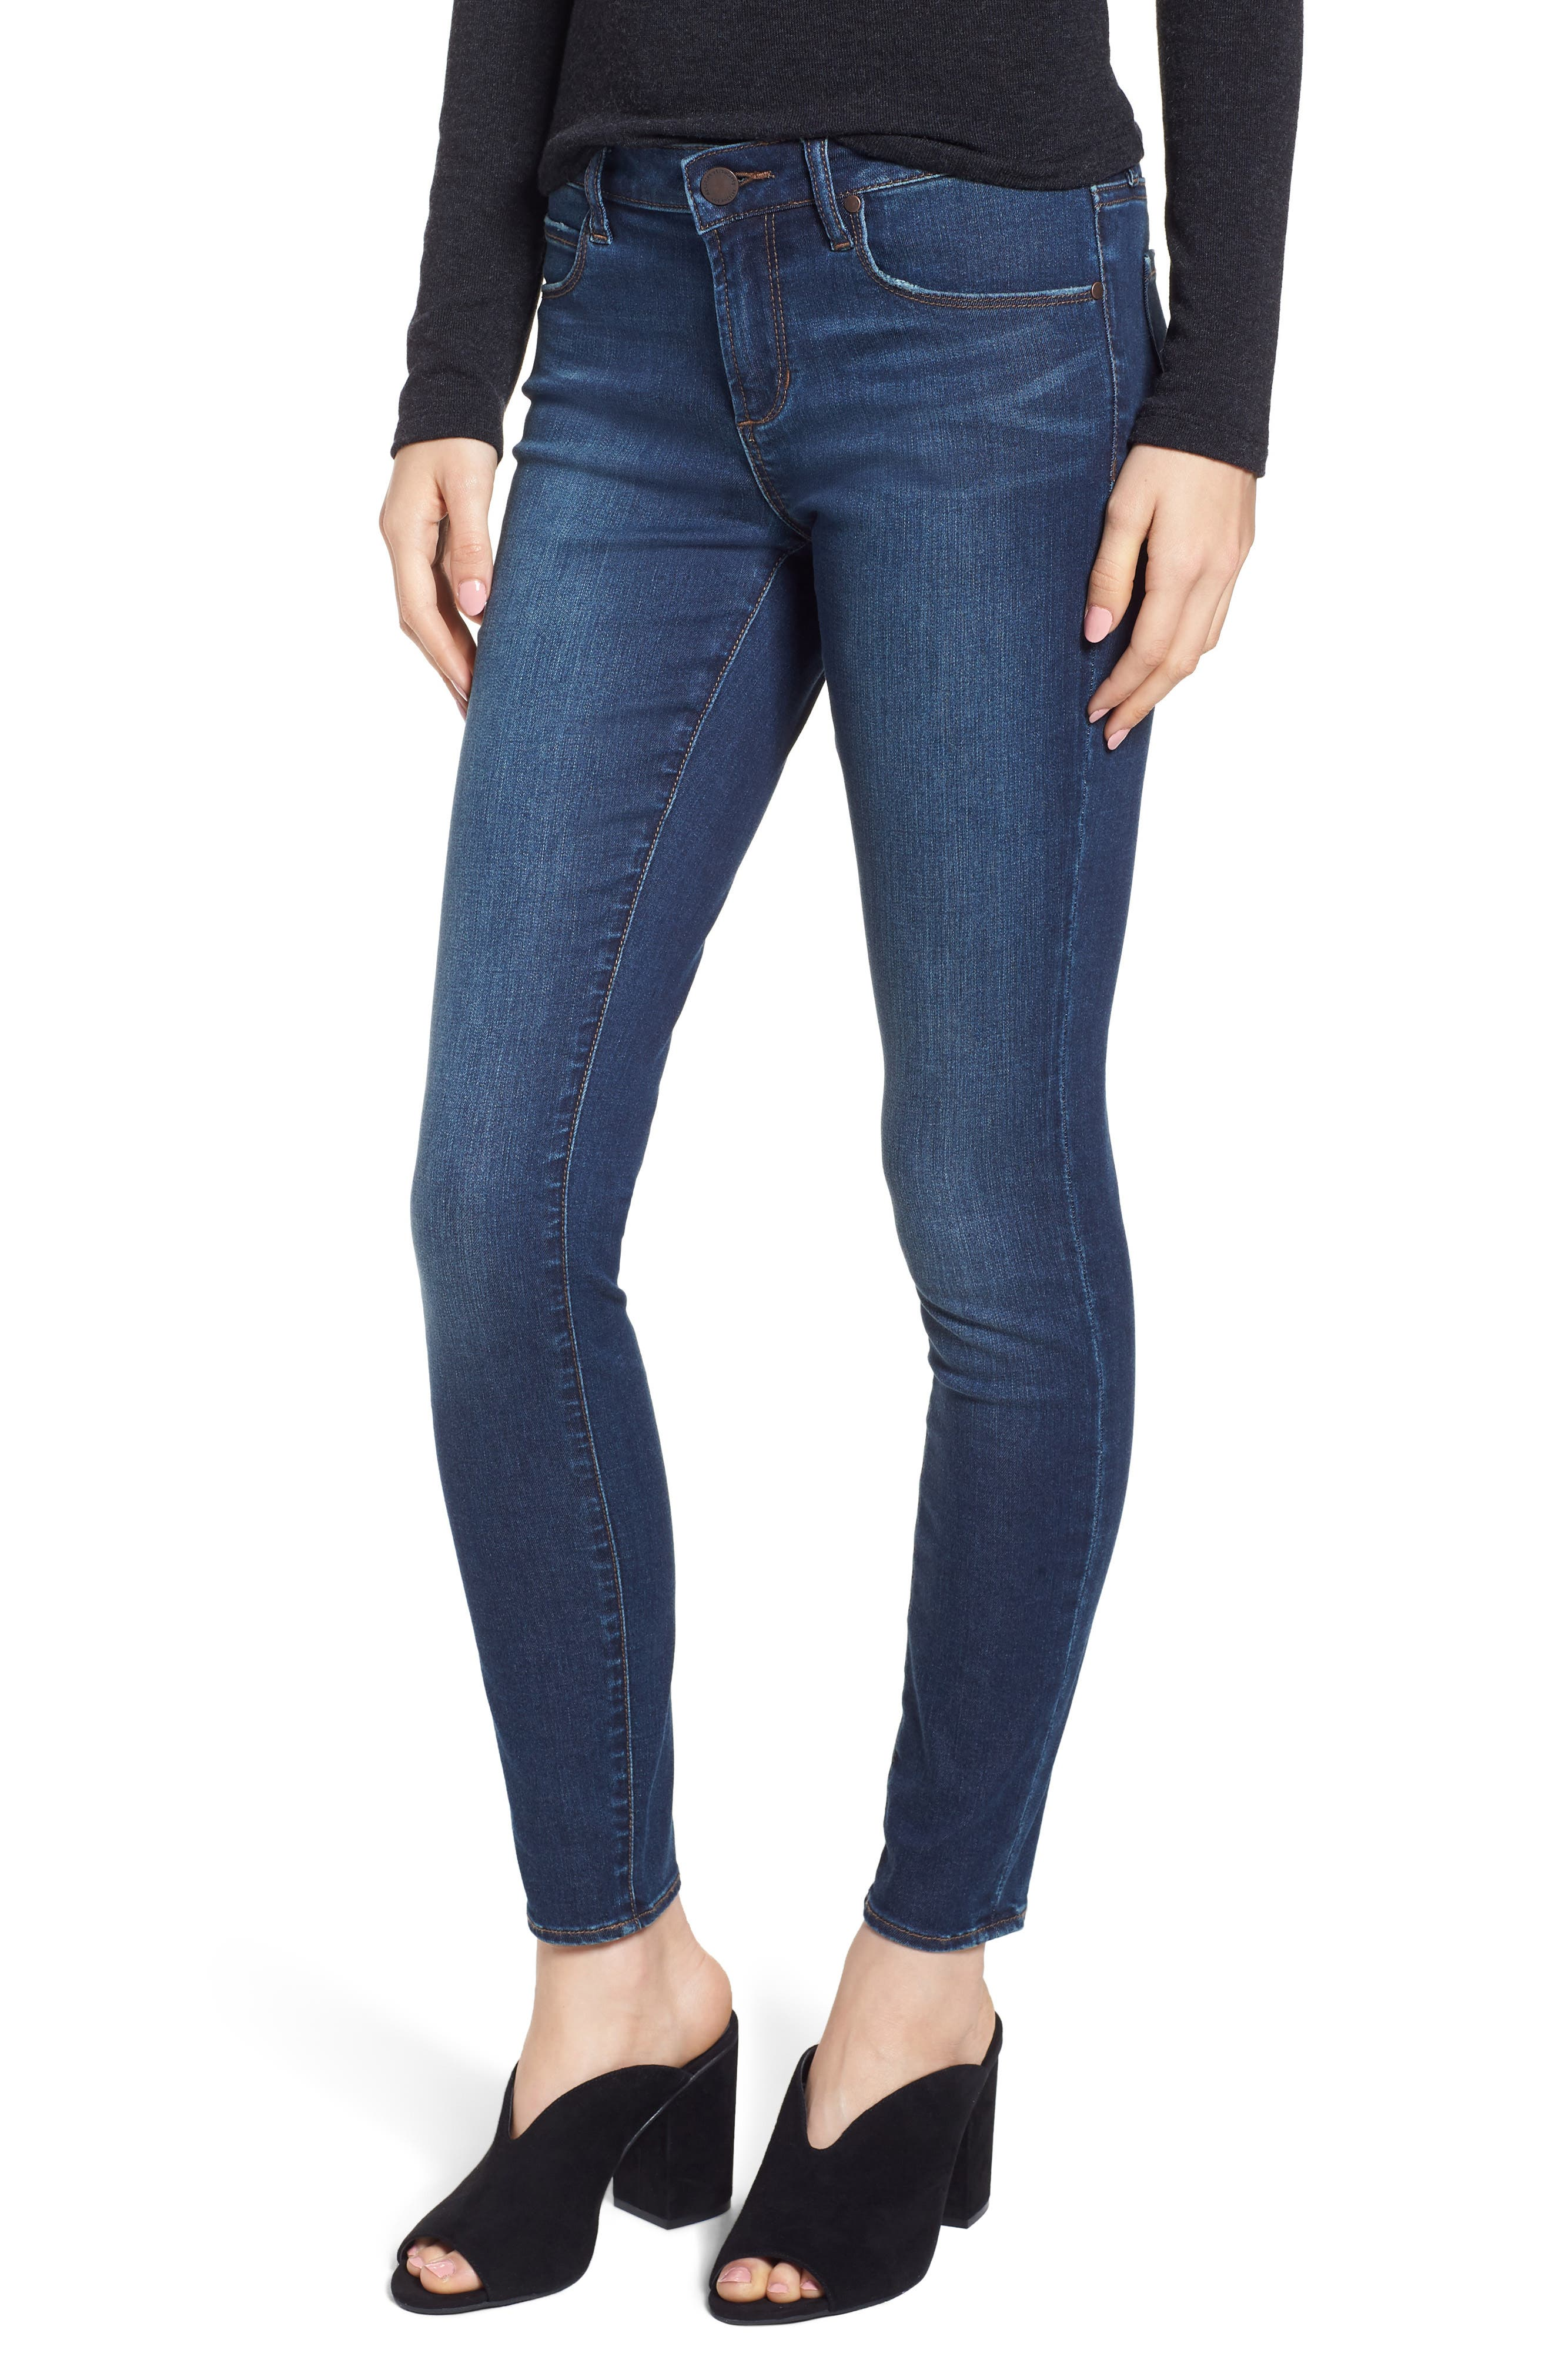 ARTICLES OF SOCIETY Sarah Skinny Jeans, Main, color, 400